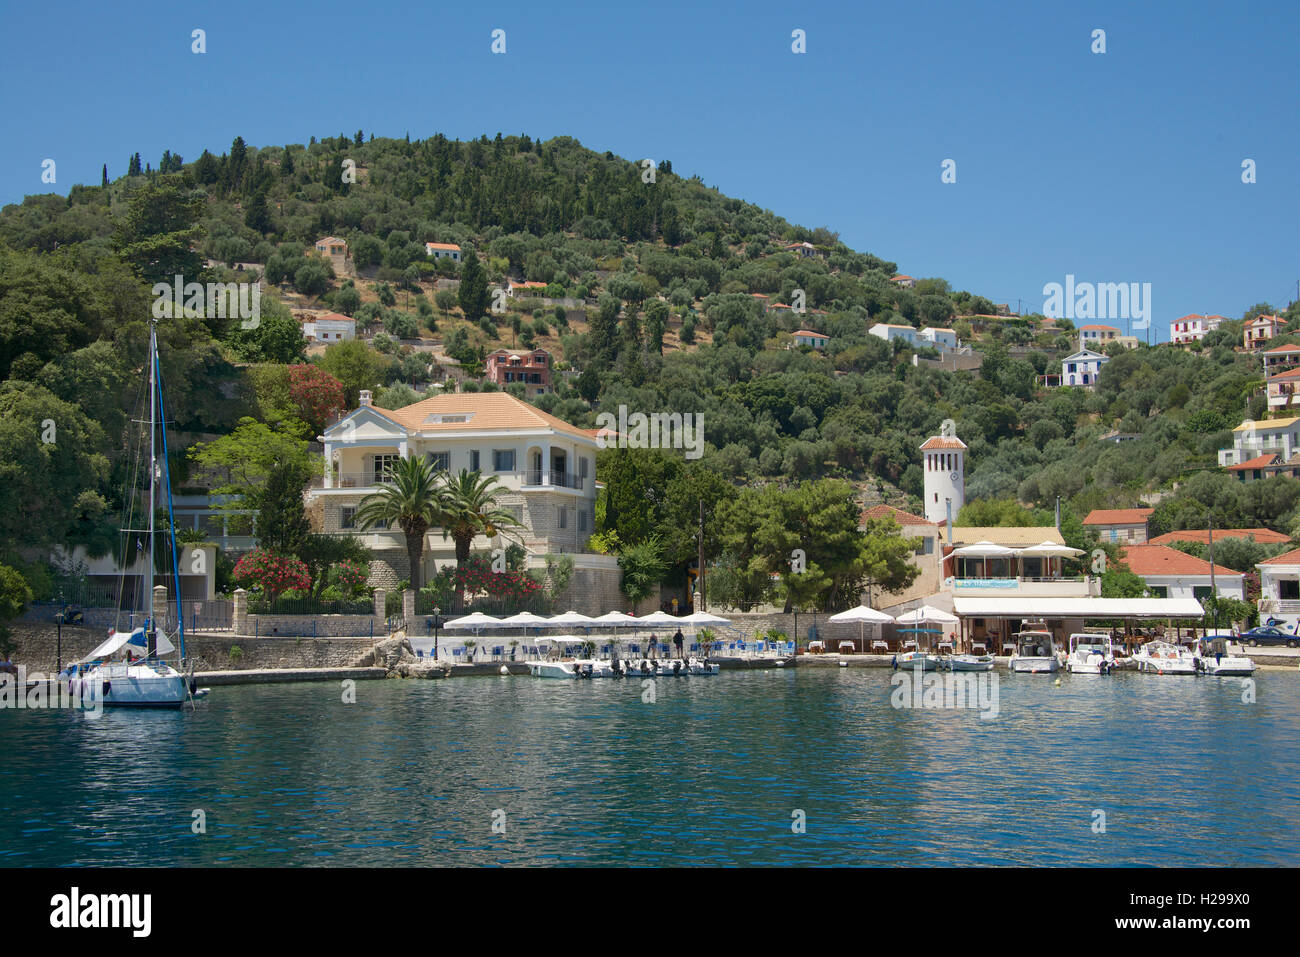 Waterfront house and town Kioni Ithaka Island Ionian Islands Greece - Stock Image